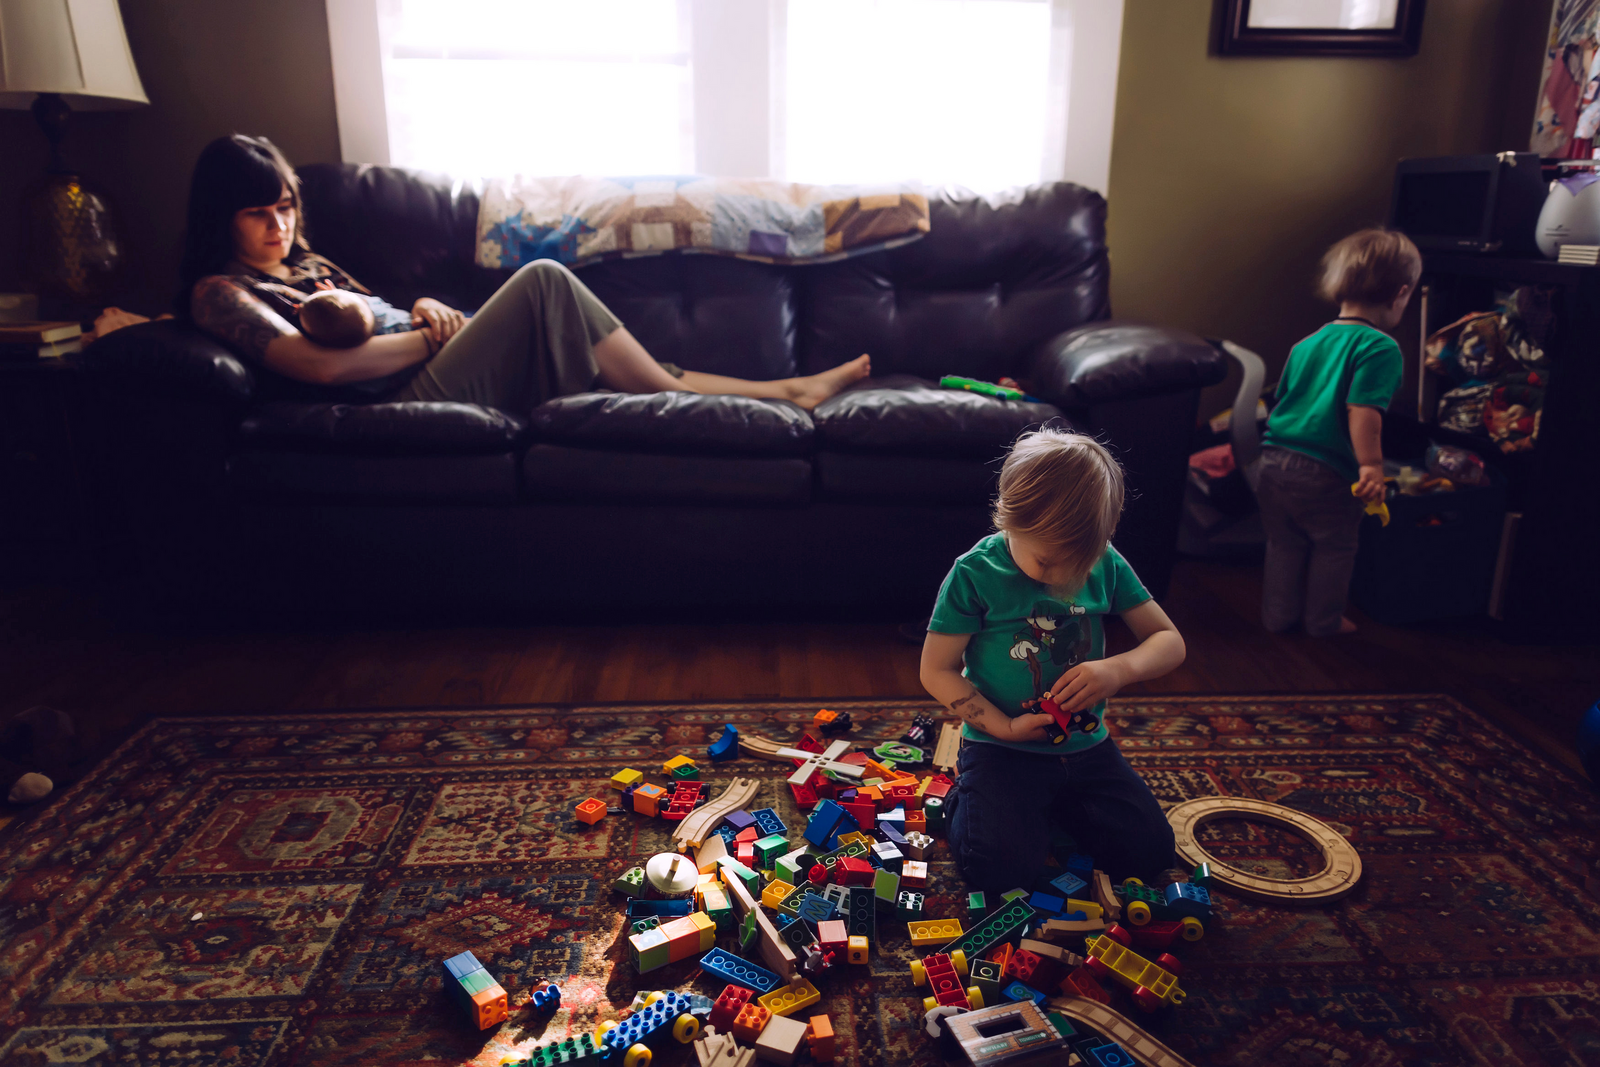 family photographer, columbus, ga, atlanta, documentary, photojournalism, messy toys, kids playing_1042-2-2